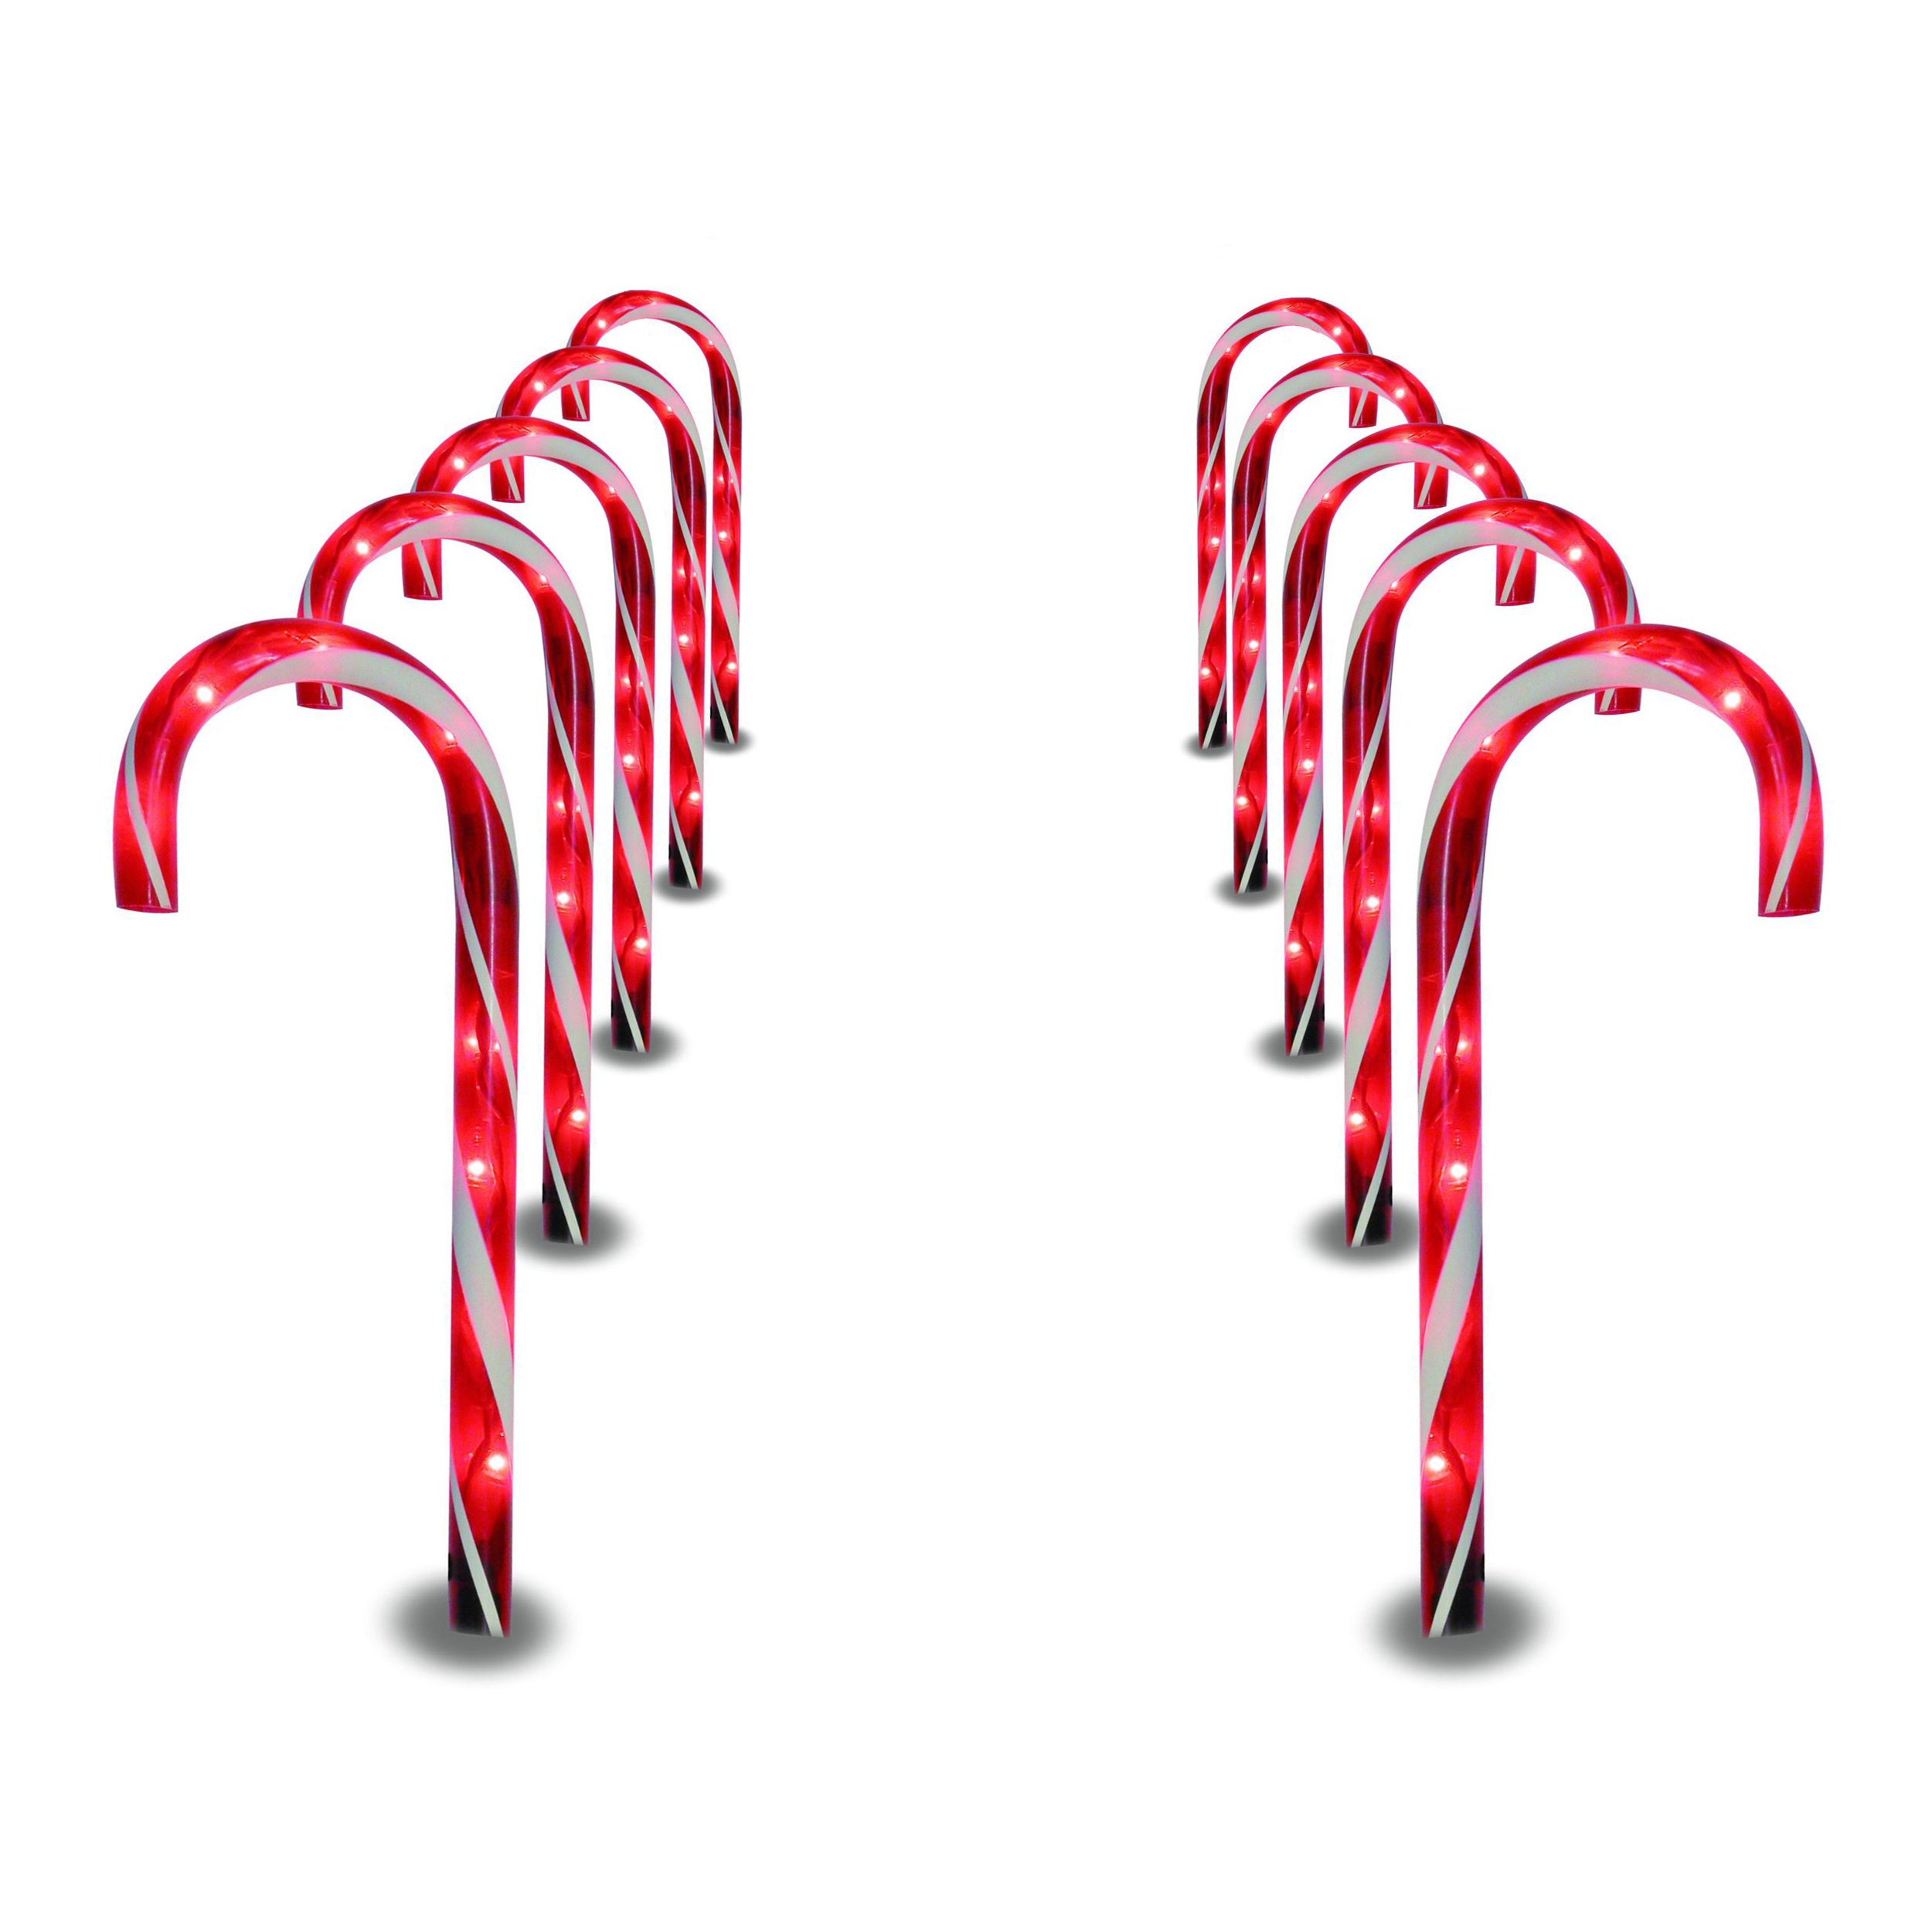 Prextex Christmas Candy Cane Pathway Markers Set of 10 Christmas Indoor/Outdoor Decoration Lights by Prextex